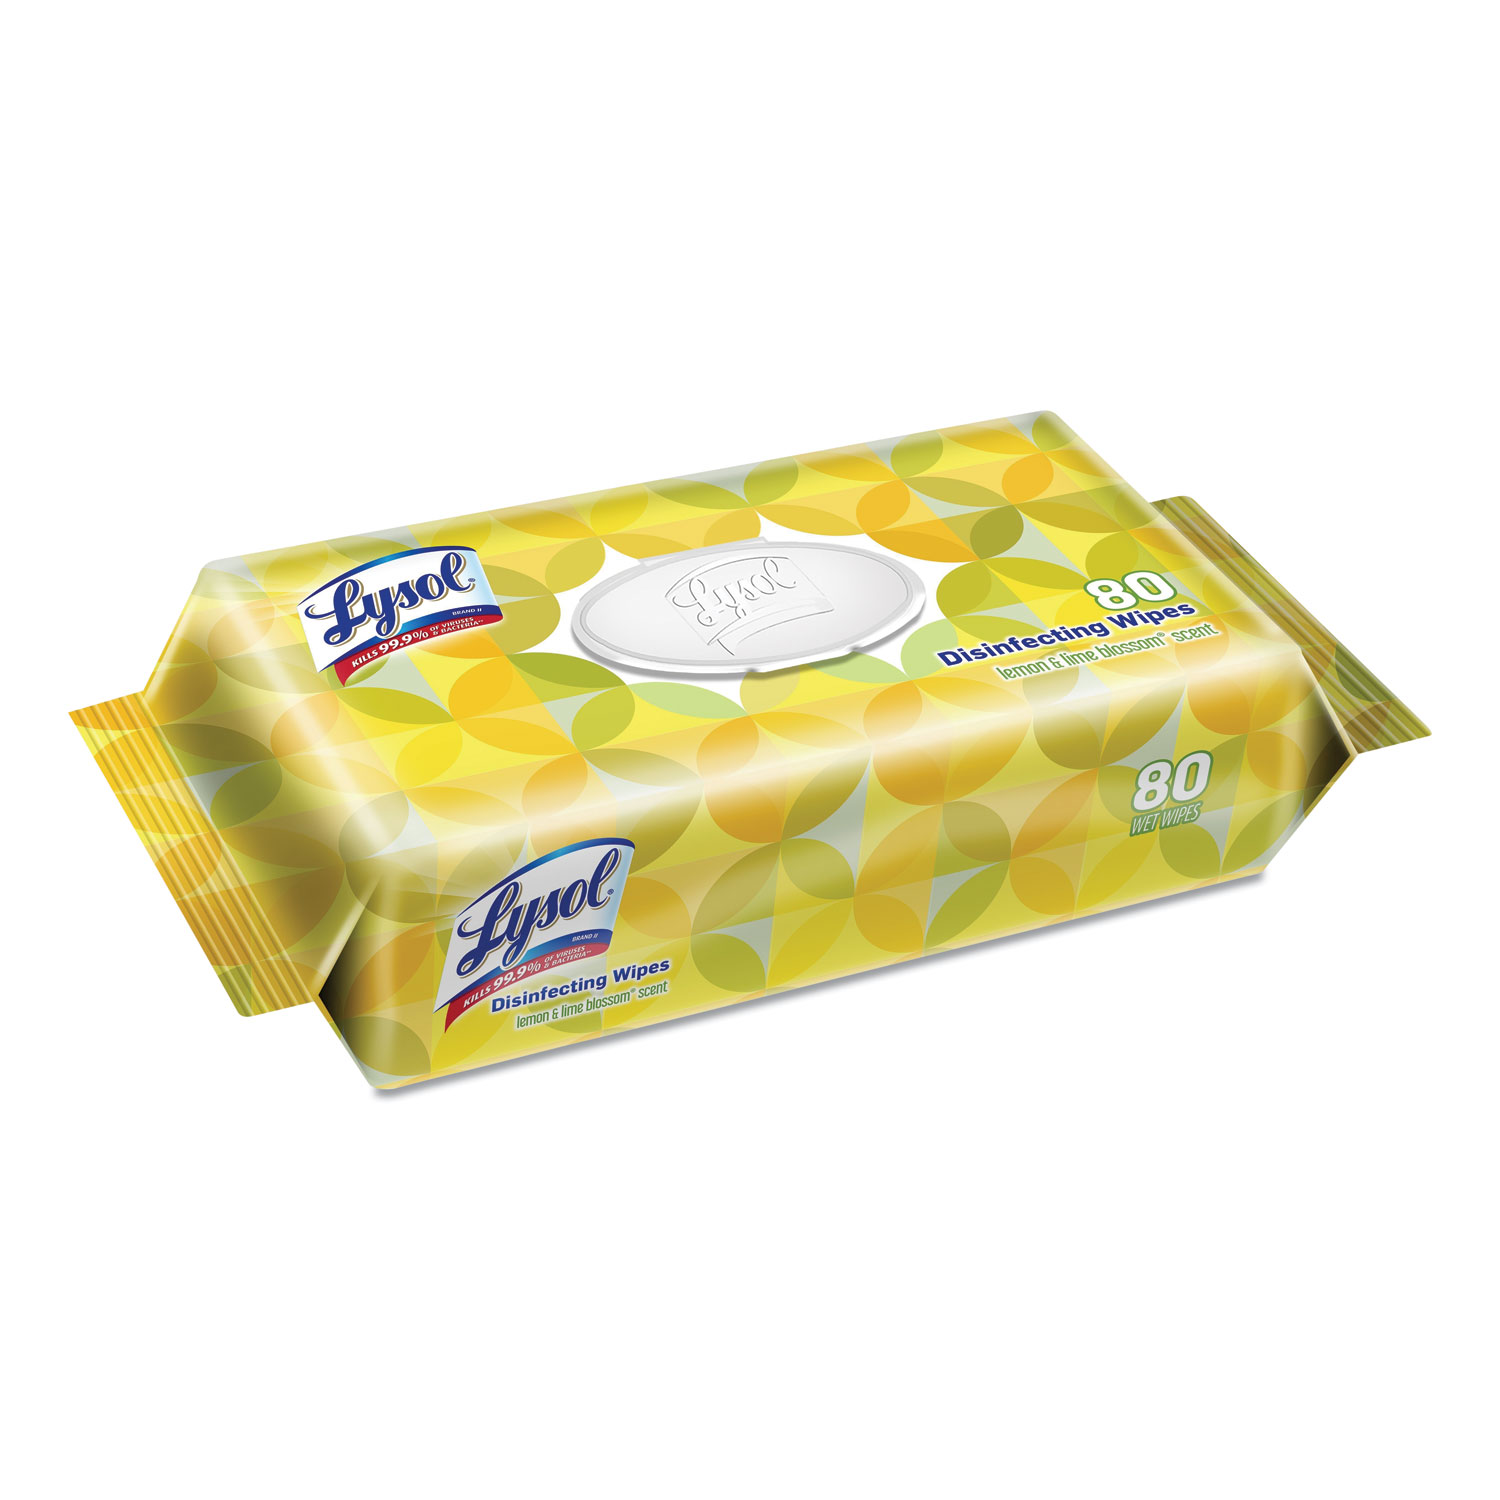 LYSOL® Brand Disinfecting Wipes Flatpacks, 6.75 x 8.5, Lemon and Lime Blossom, 80 Wipes/Flat Pack, 6 Flat Packs/Carton